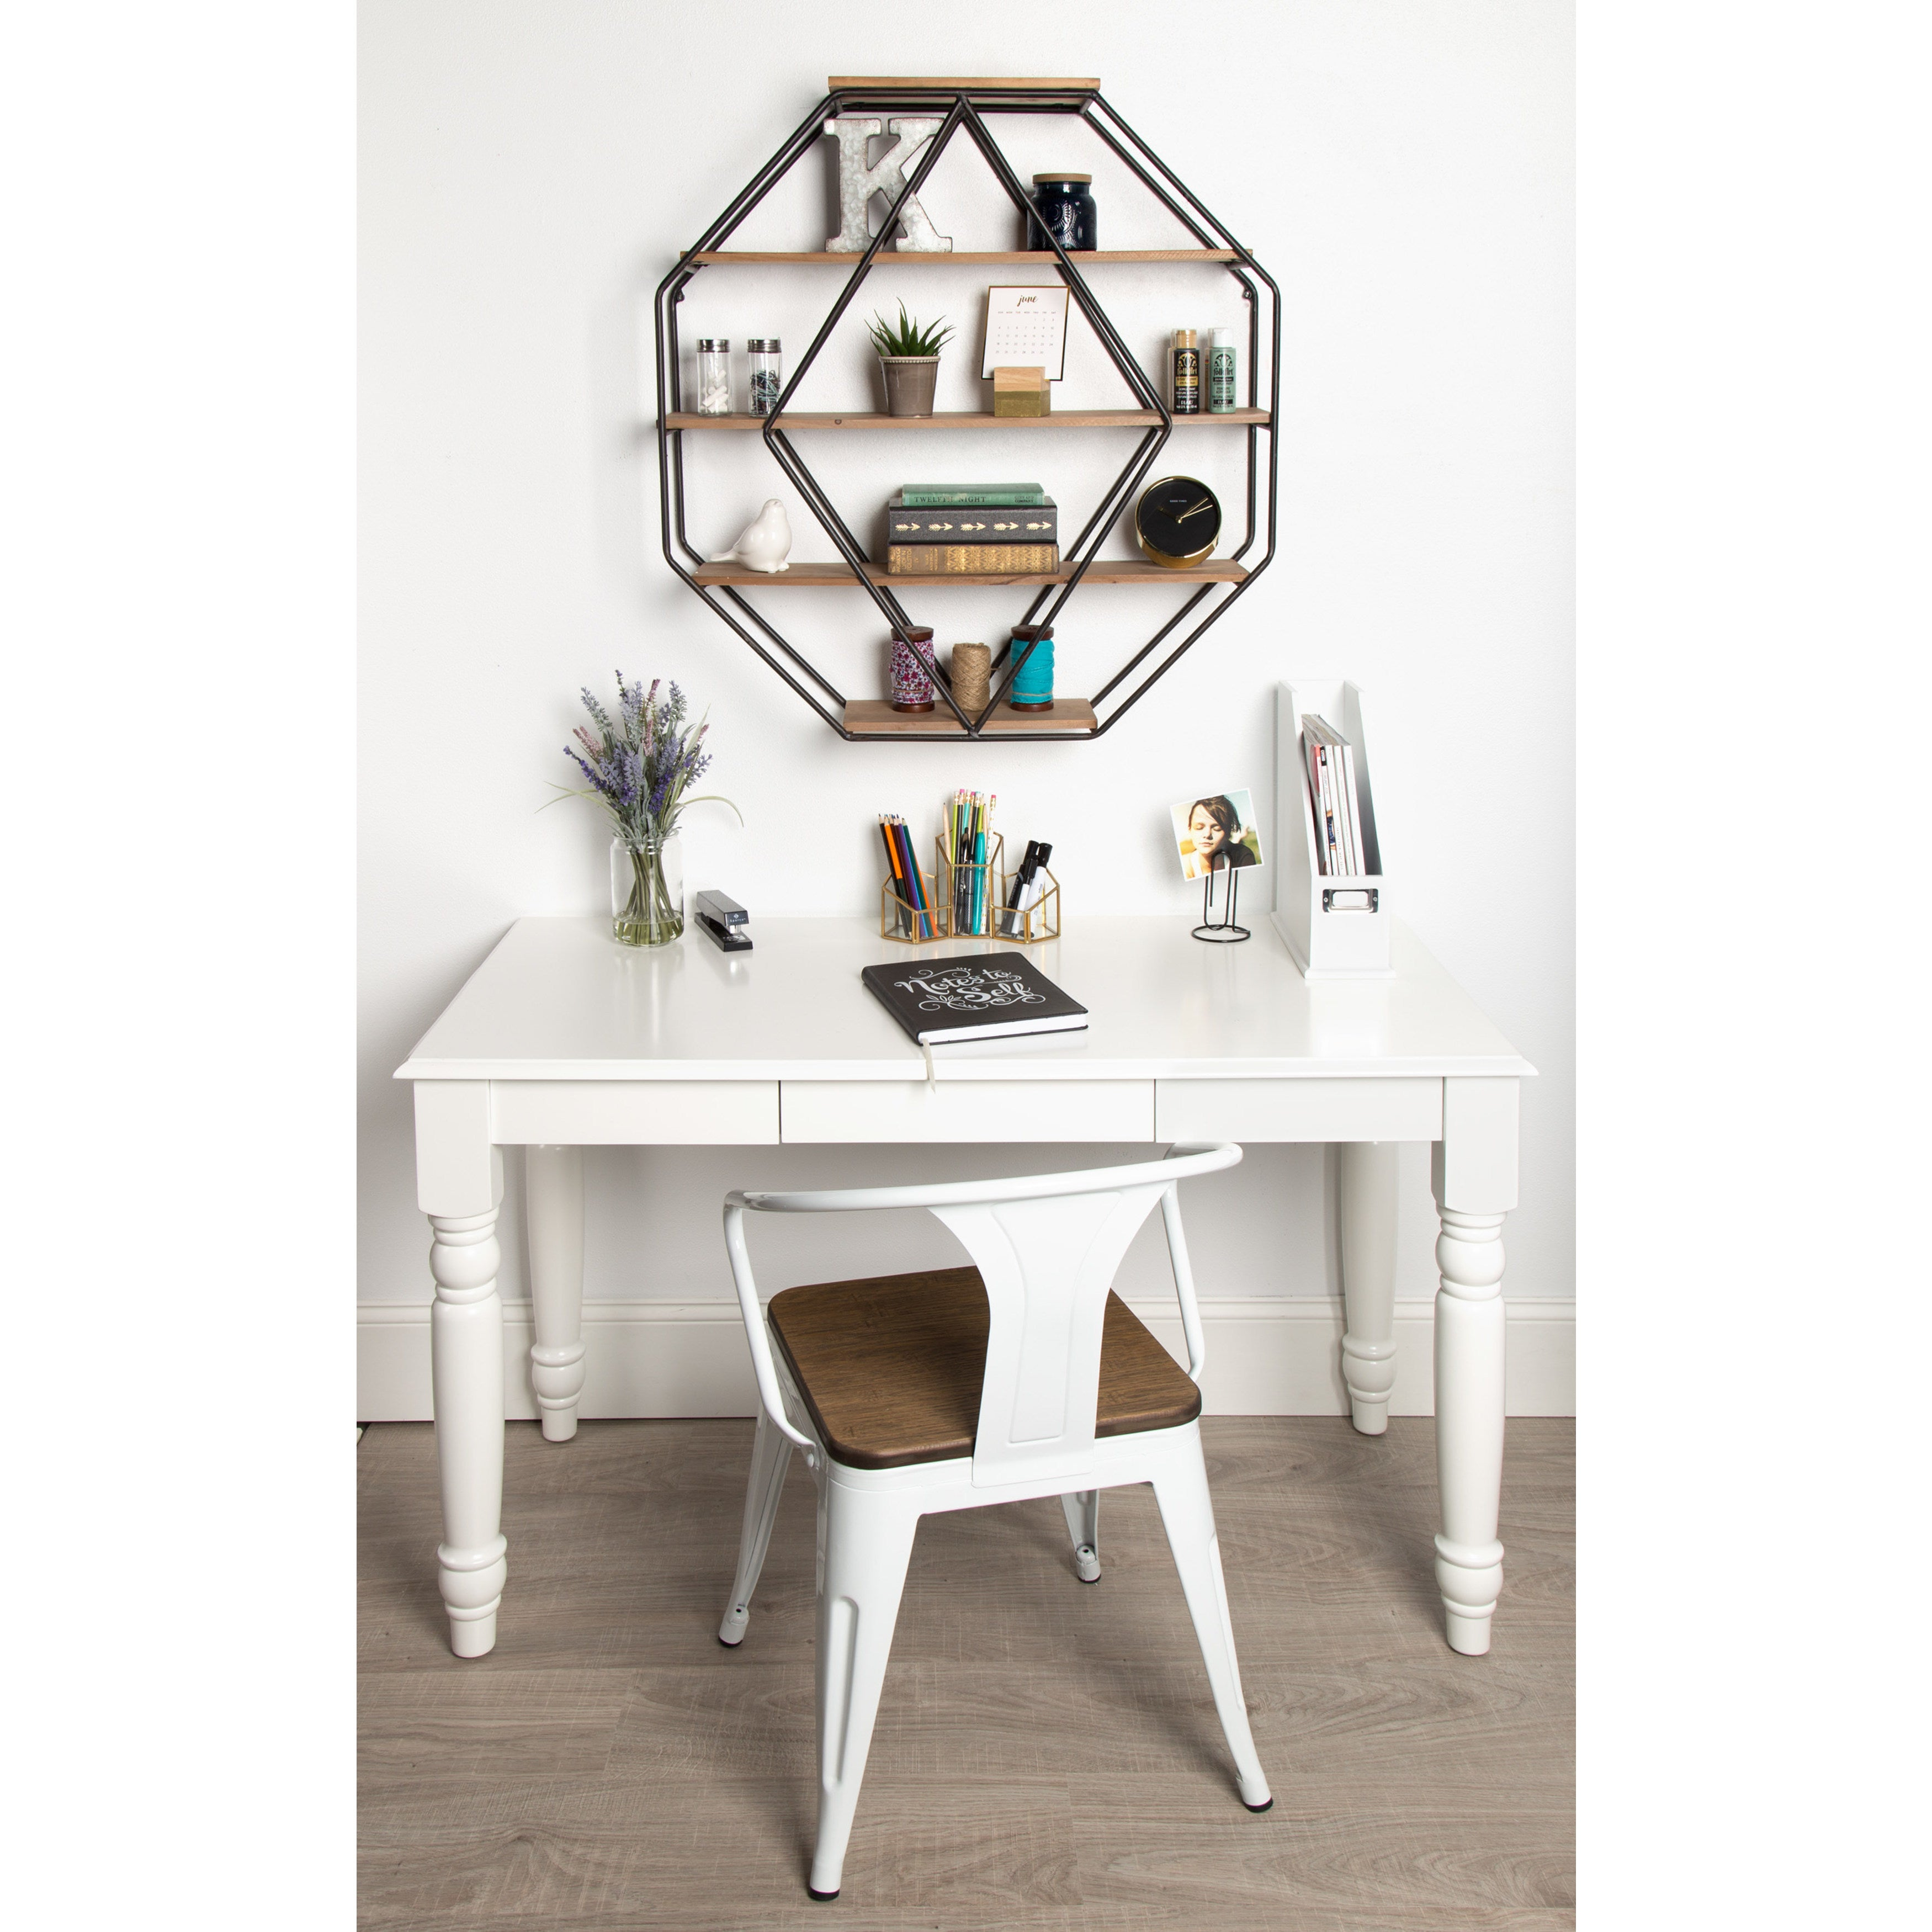 competitive price 3e41f f6e97 Kate and Laurel Lintz Wood Octagon Floating Wall Shelves